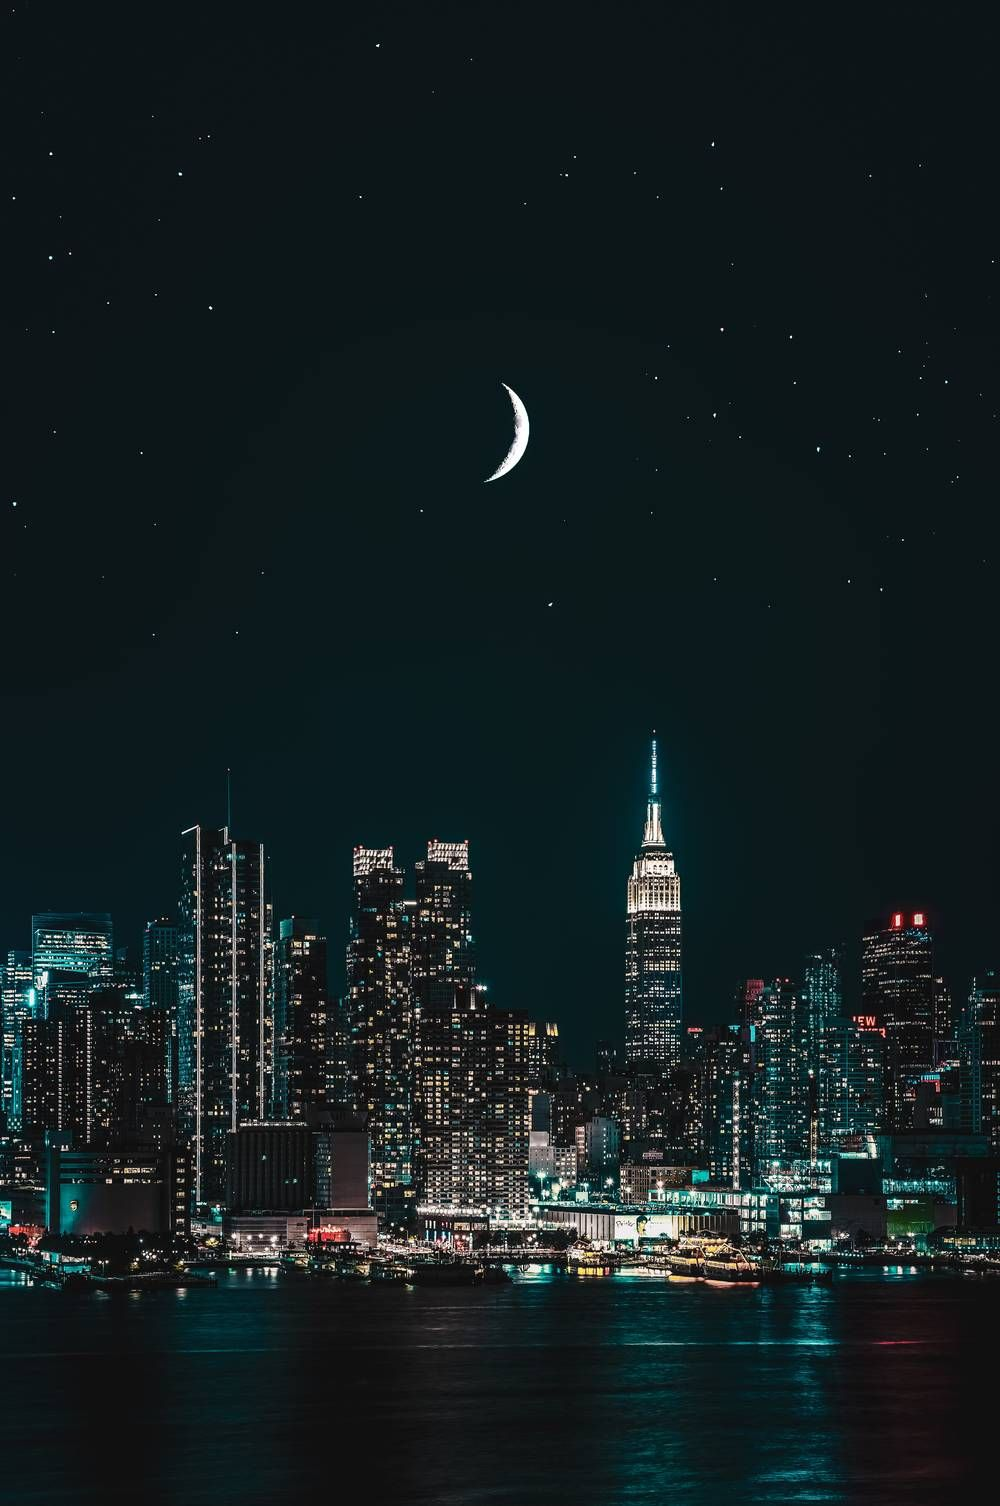 Skyline Photography of Buildings · Free Stock Phot